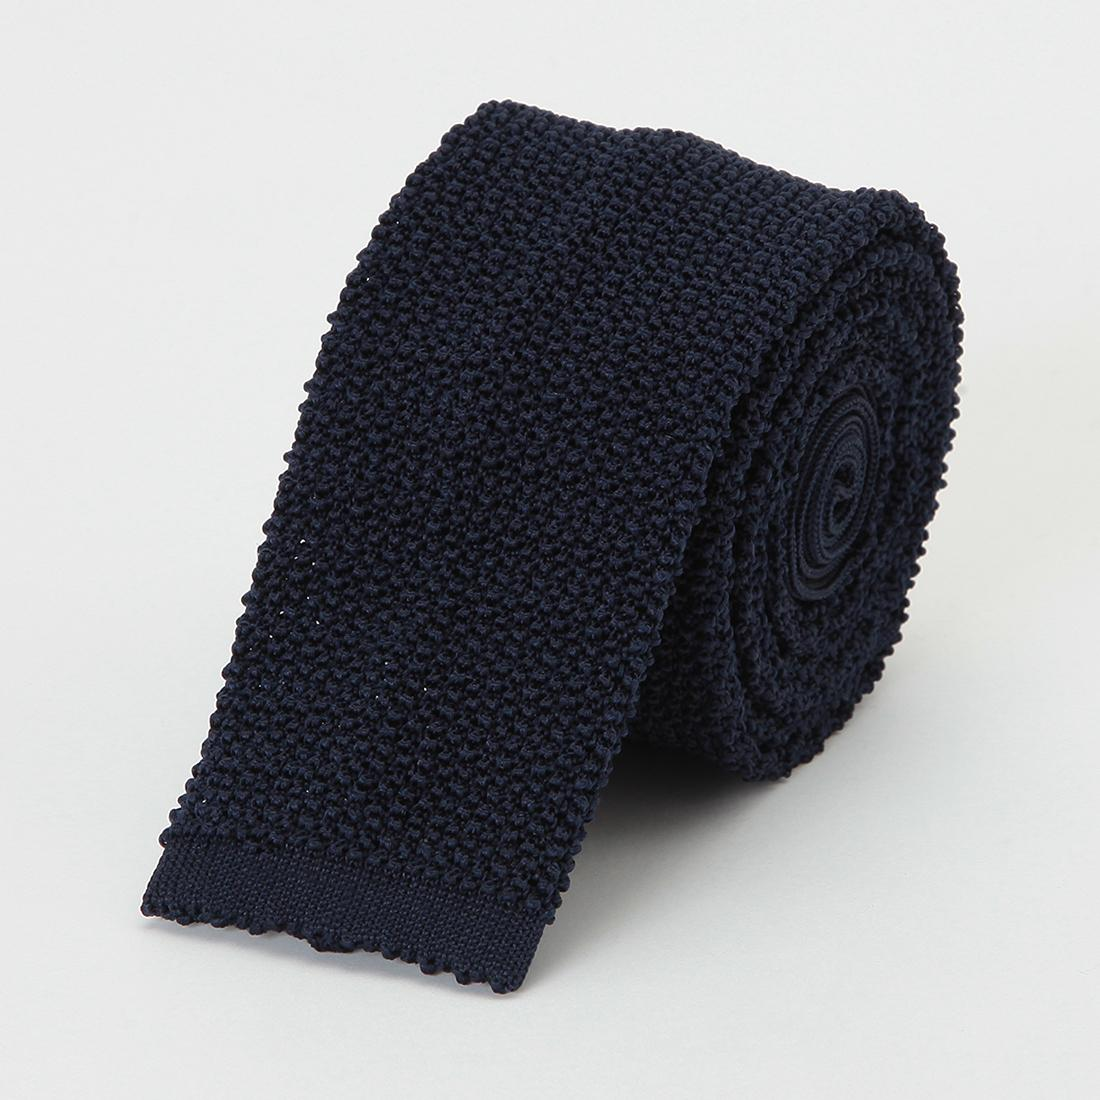 Barneys New York Silk Knit Tie 2011116: Navy